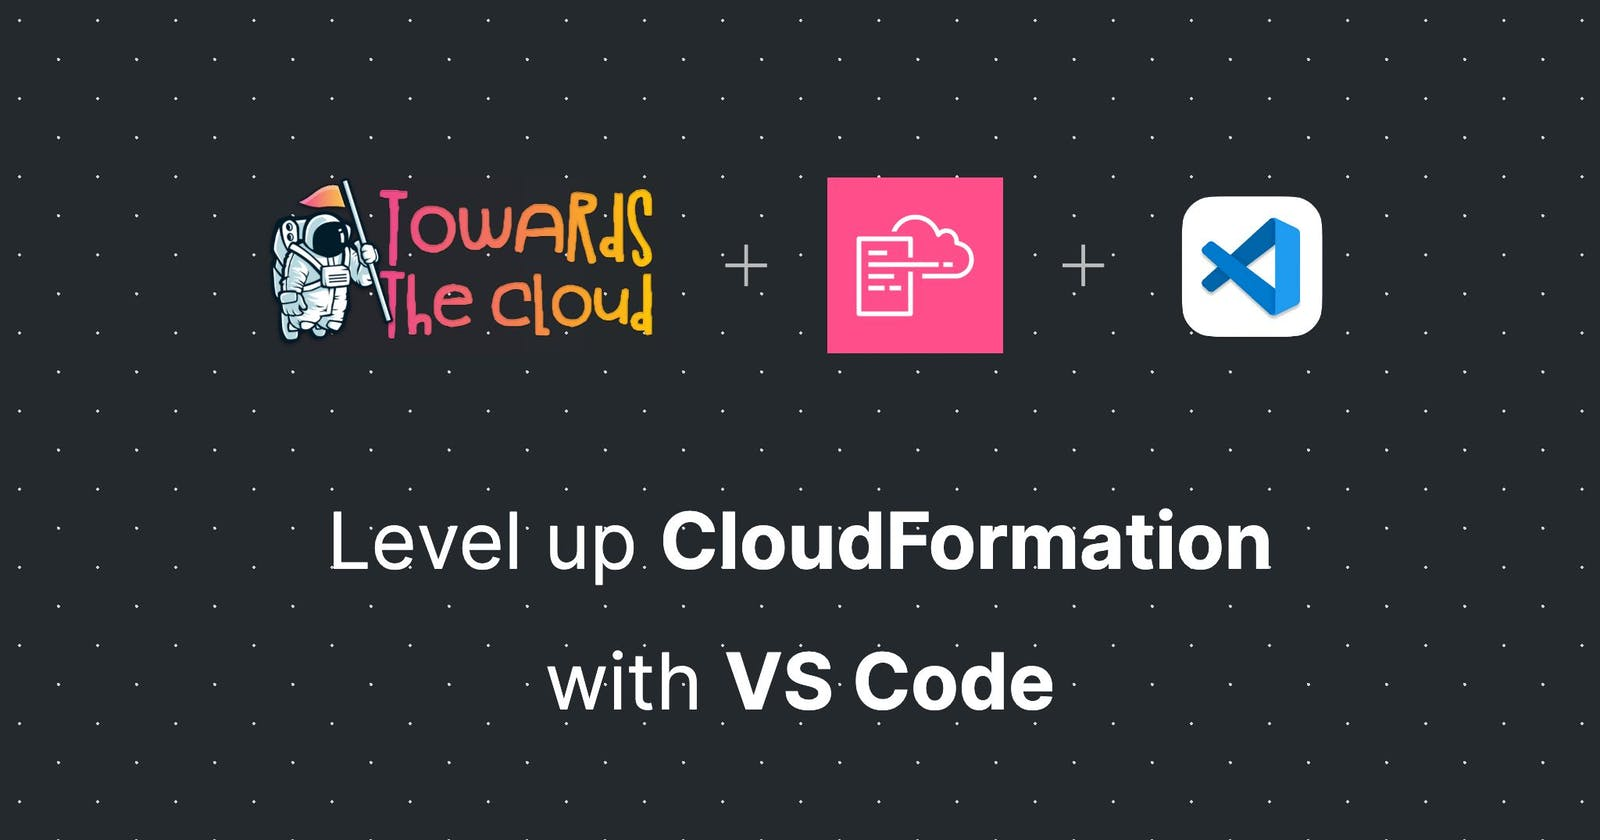 Level up CloudFormation with VS Code